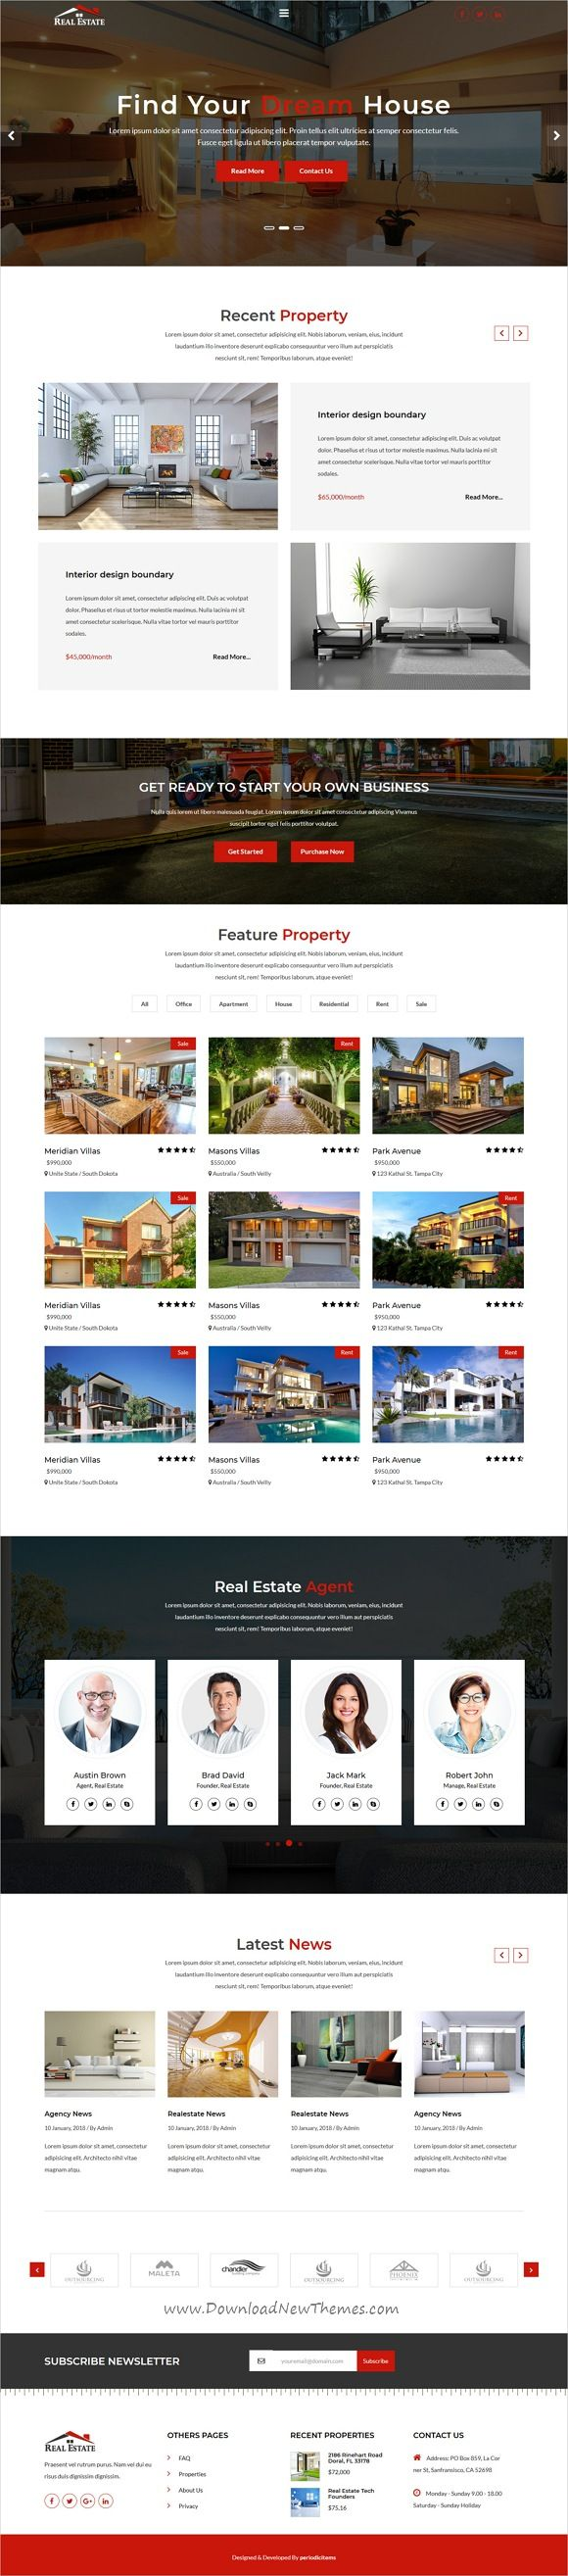 Clean and modern design responsive 4in1 bootstrap template for #realestate and #property agencies website download now #webdsign